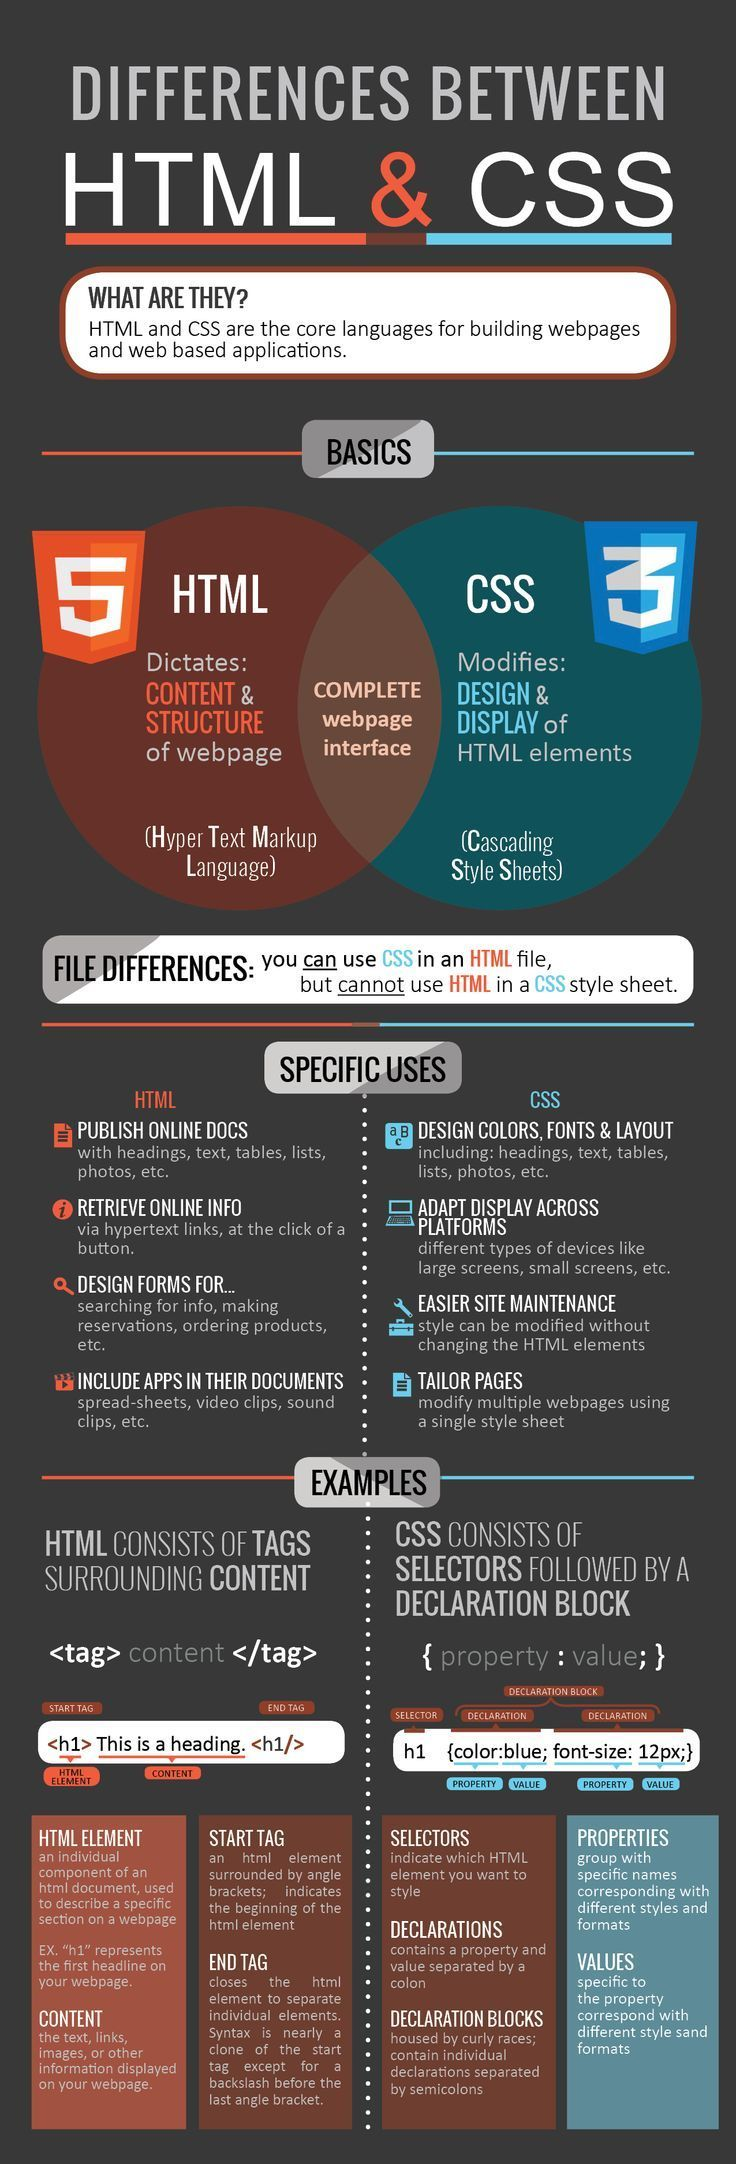 Difference Between Studio And 1 Bedroom: Differences Between HTML & CSS #Infographic